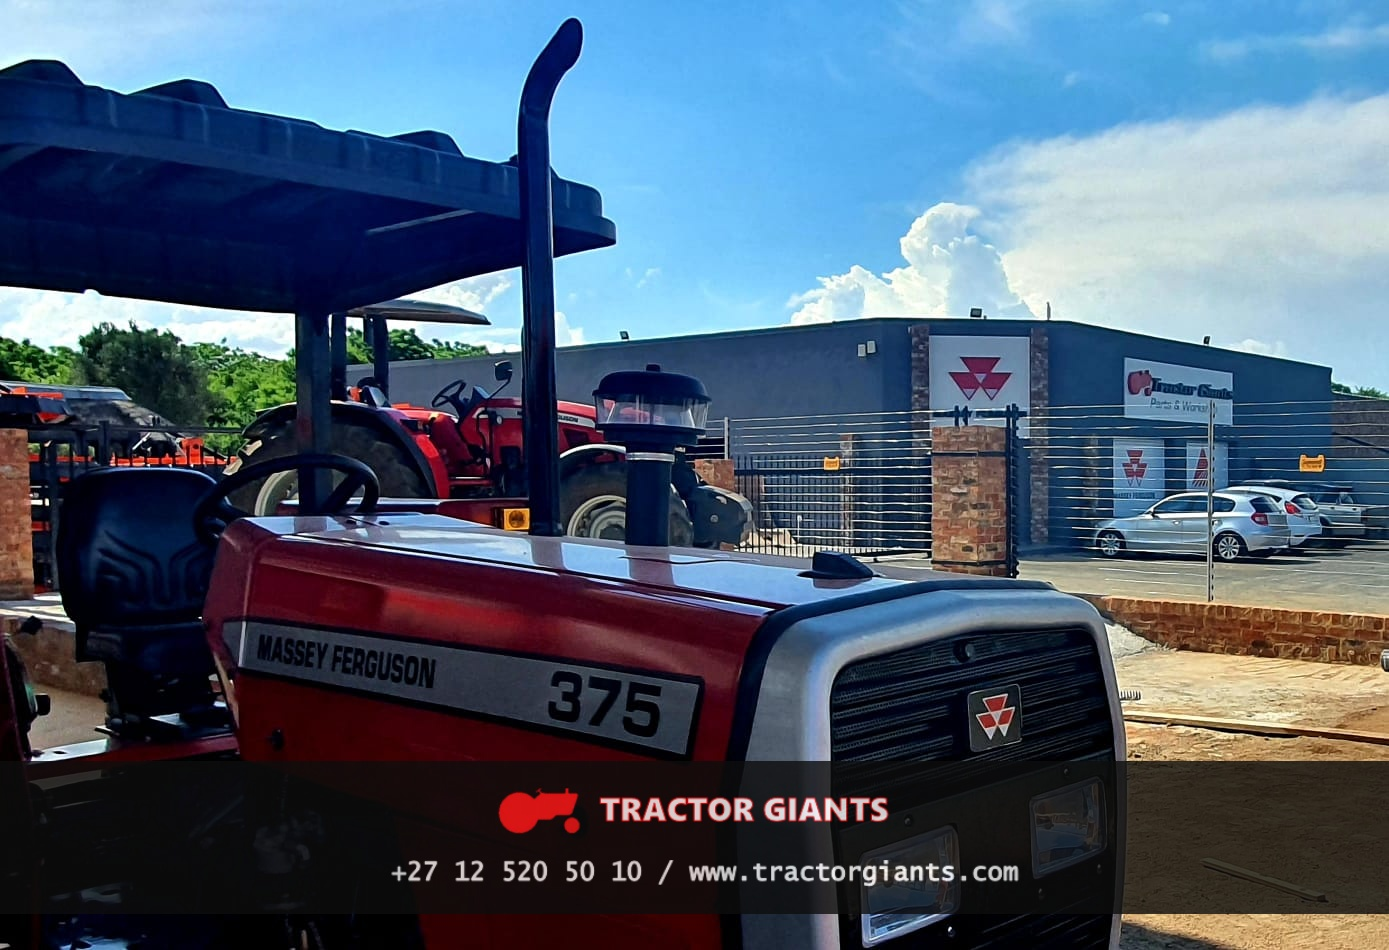 Used Tractors for sale - Tractor Giants